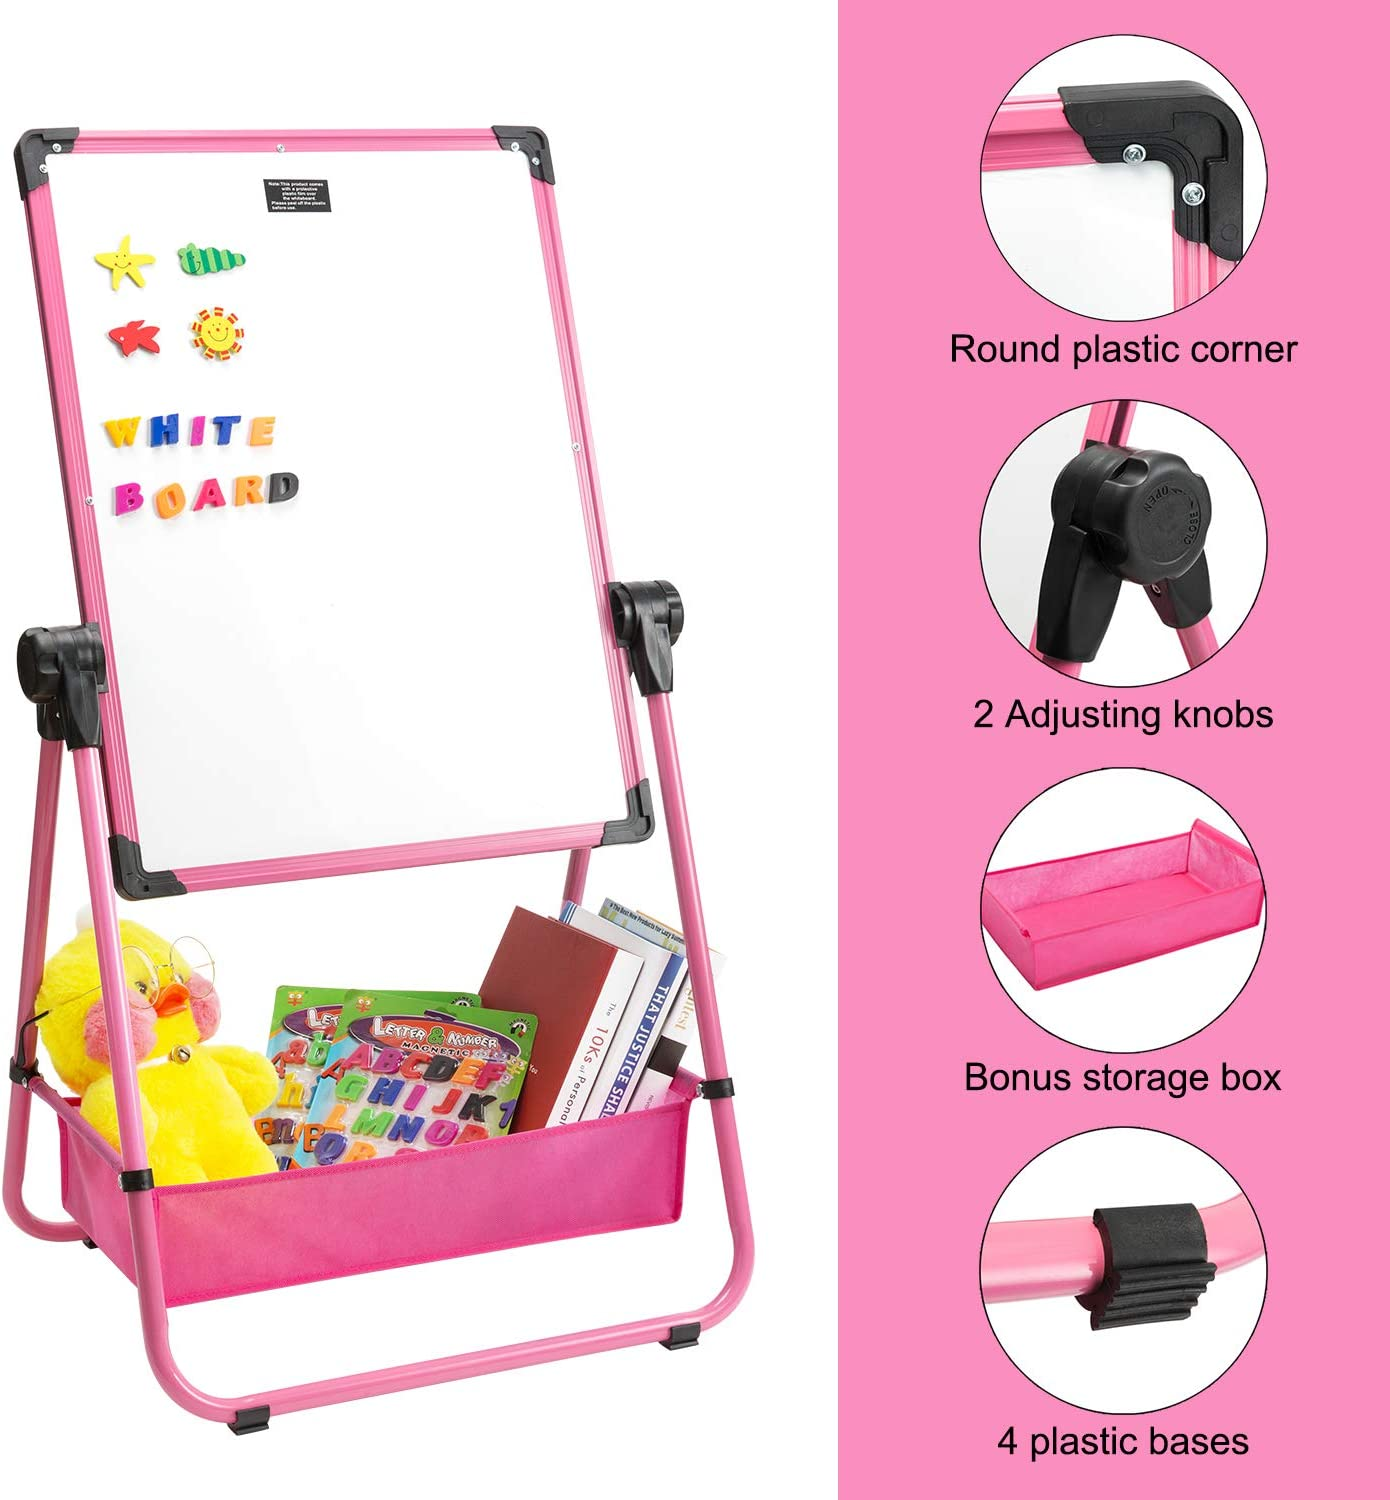 Height Adjustable /& 360/°Rotating with Bonus Storage Box Marble Field 24 x 18 Magnetic U-Stand Whiteboard//Kids Flip Chart Easel Pink Double Sides Whiteboard /& Chalkboard Standing White Board